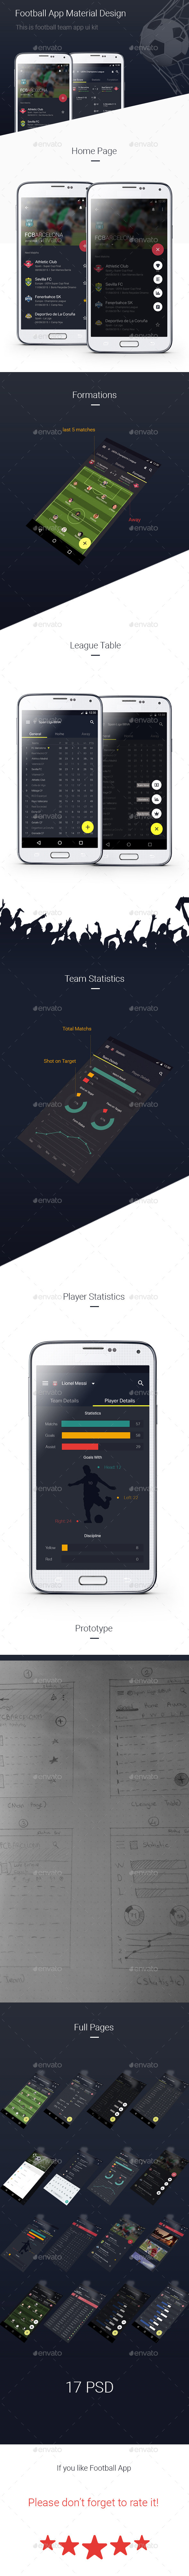 Football App Ui Kit  Material Design - User Interfaces Web Elements